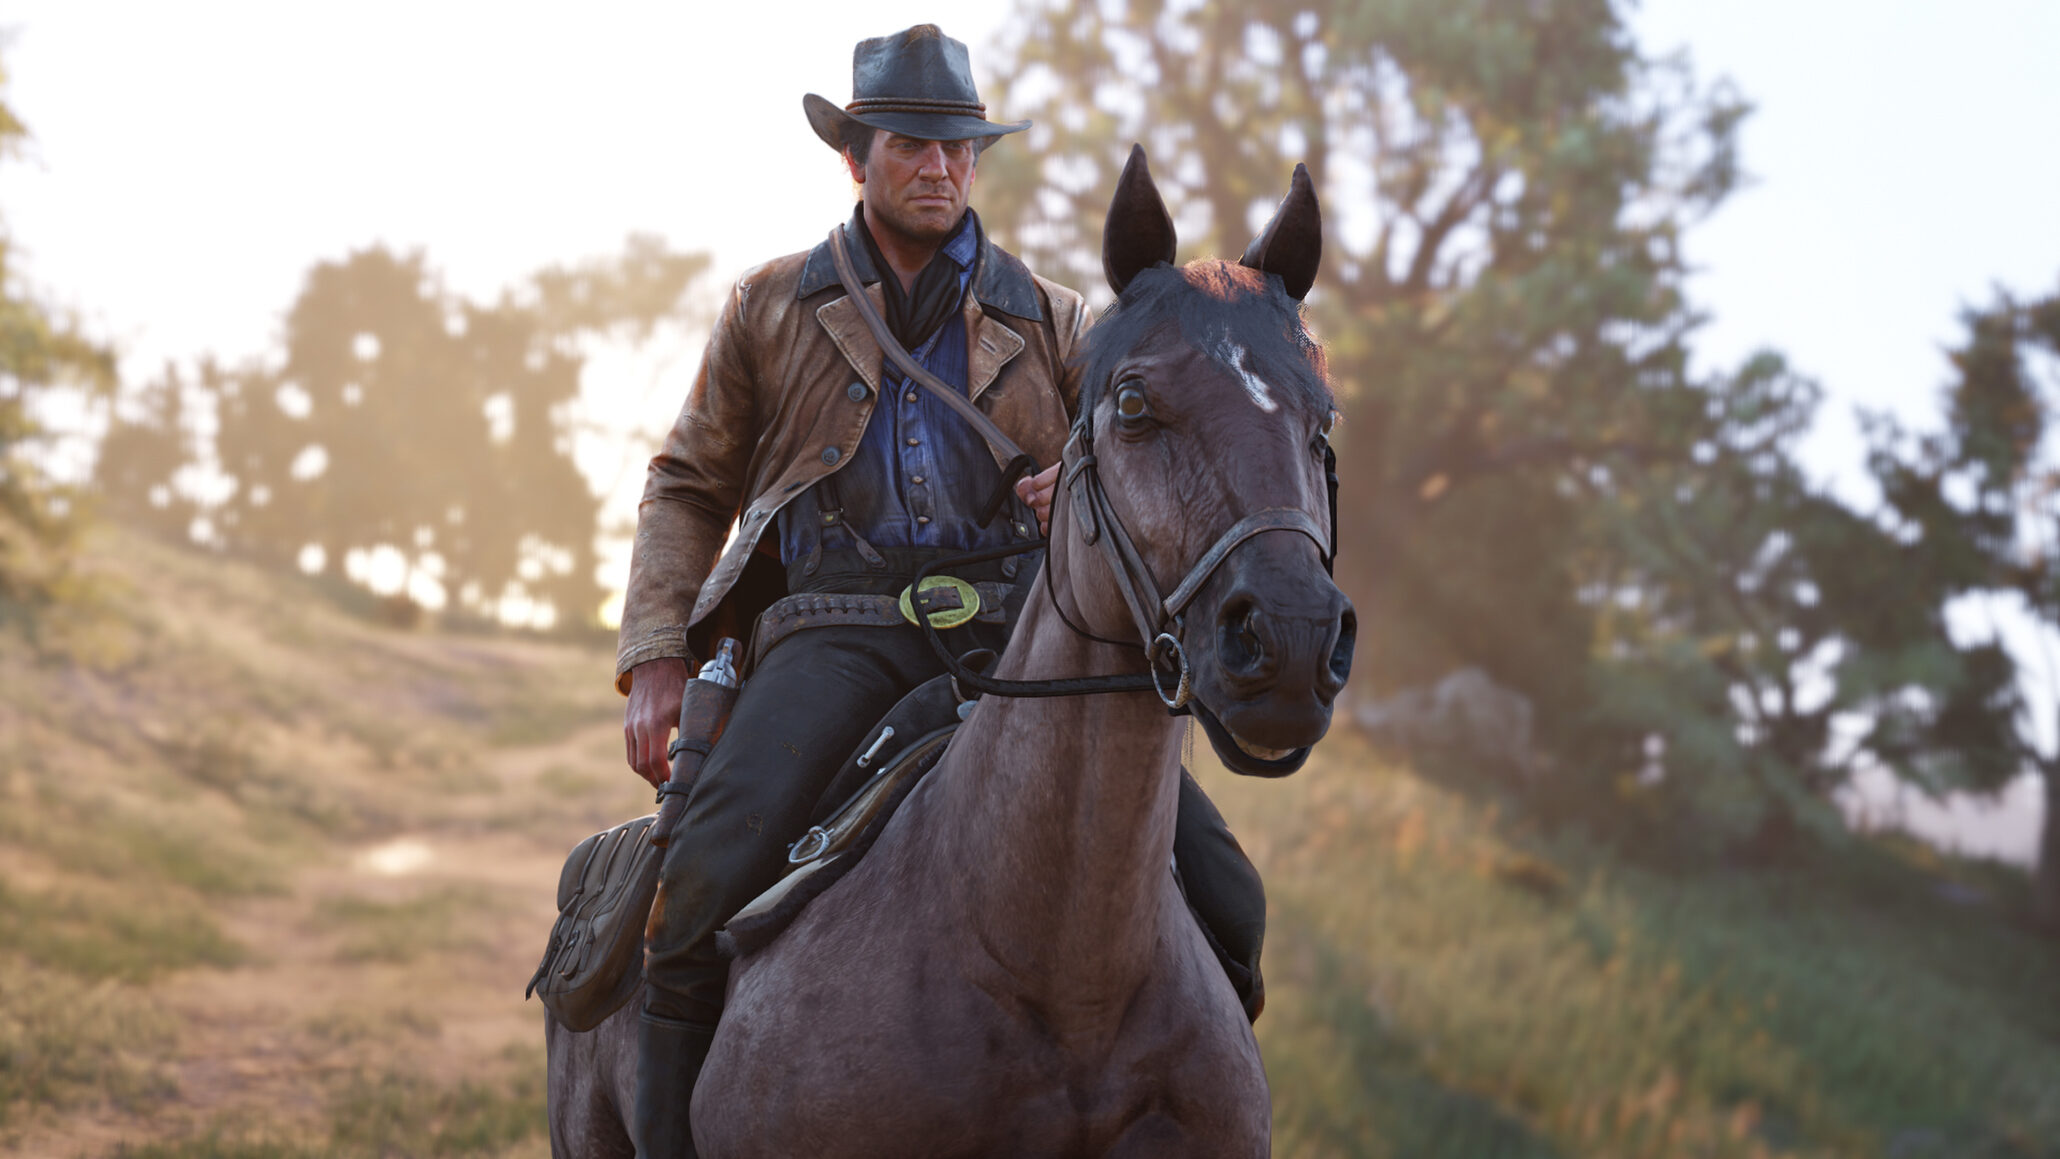 Red Dead Redemption 2 NPCs Dialogue Changes If Mini-Map Is